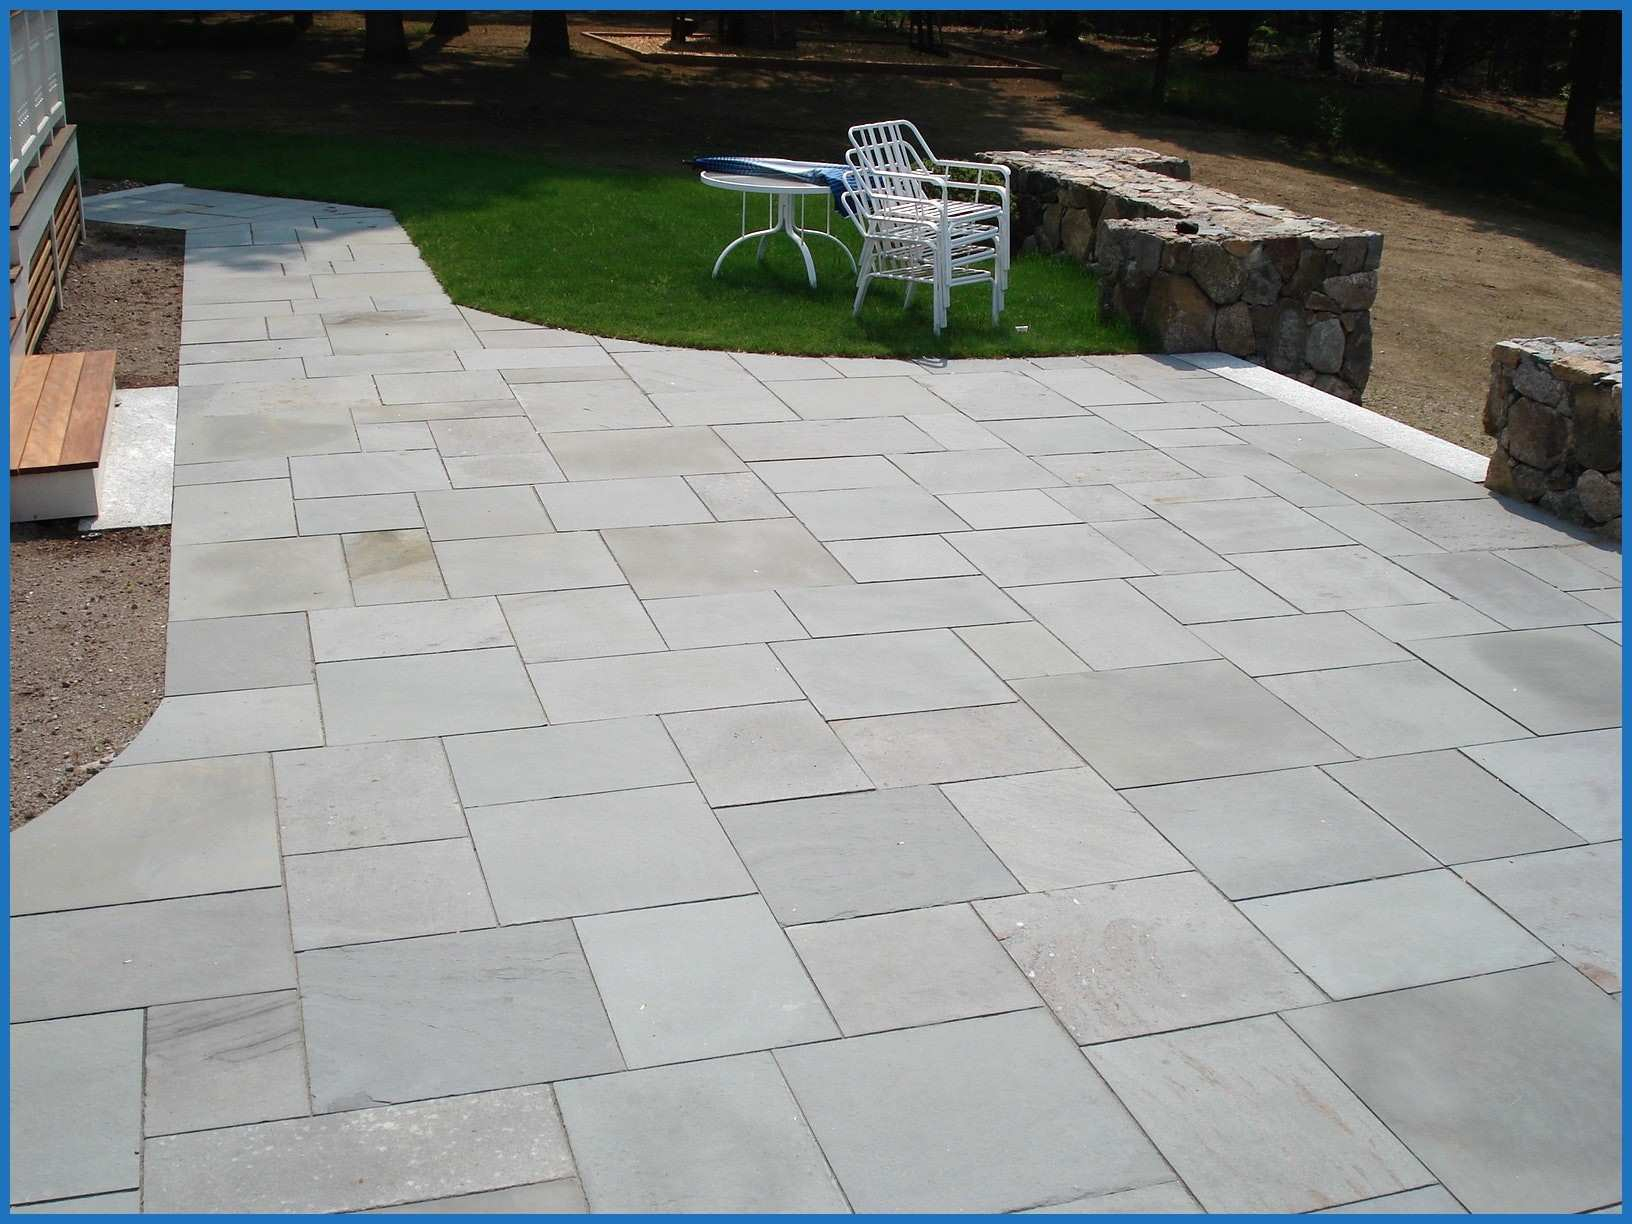 Interlocking Outdoor Patio Tile Ideas Flooring Design Idea with regard to Backyard Tiles Ideas